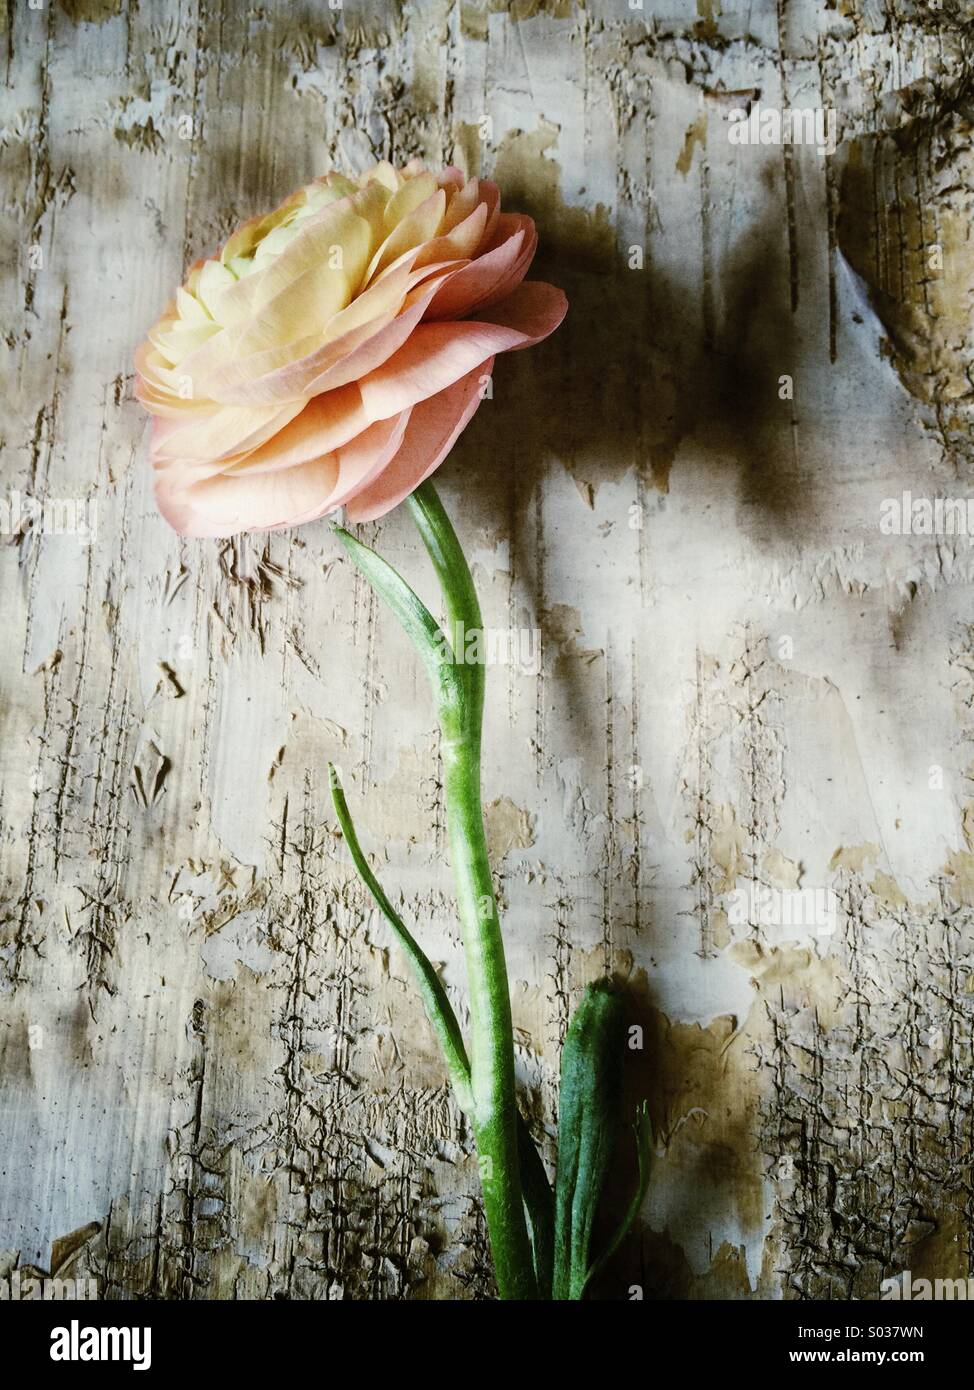 Ranunculus on tree bark - Stock Image